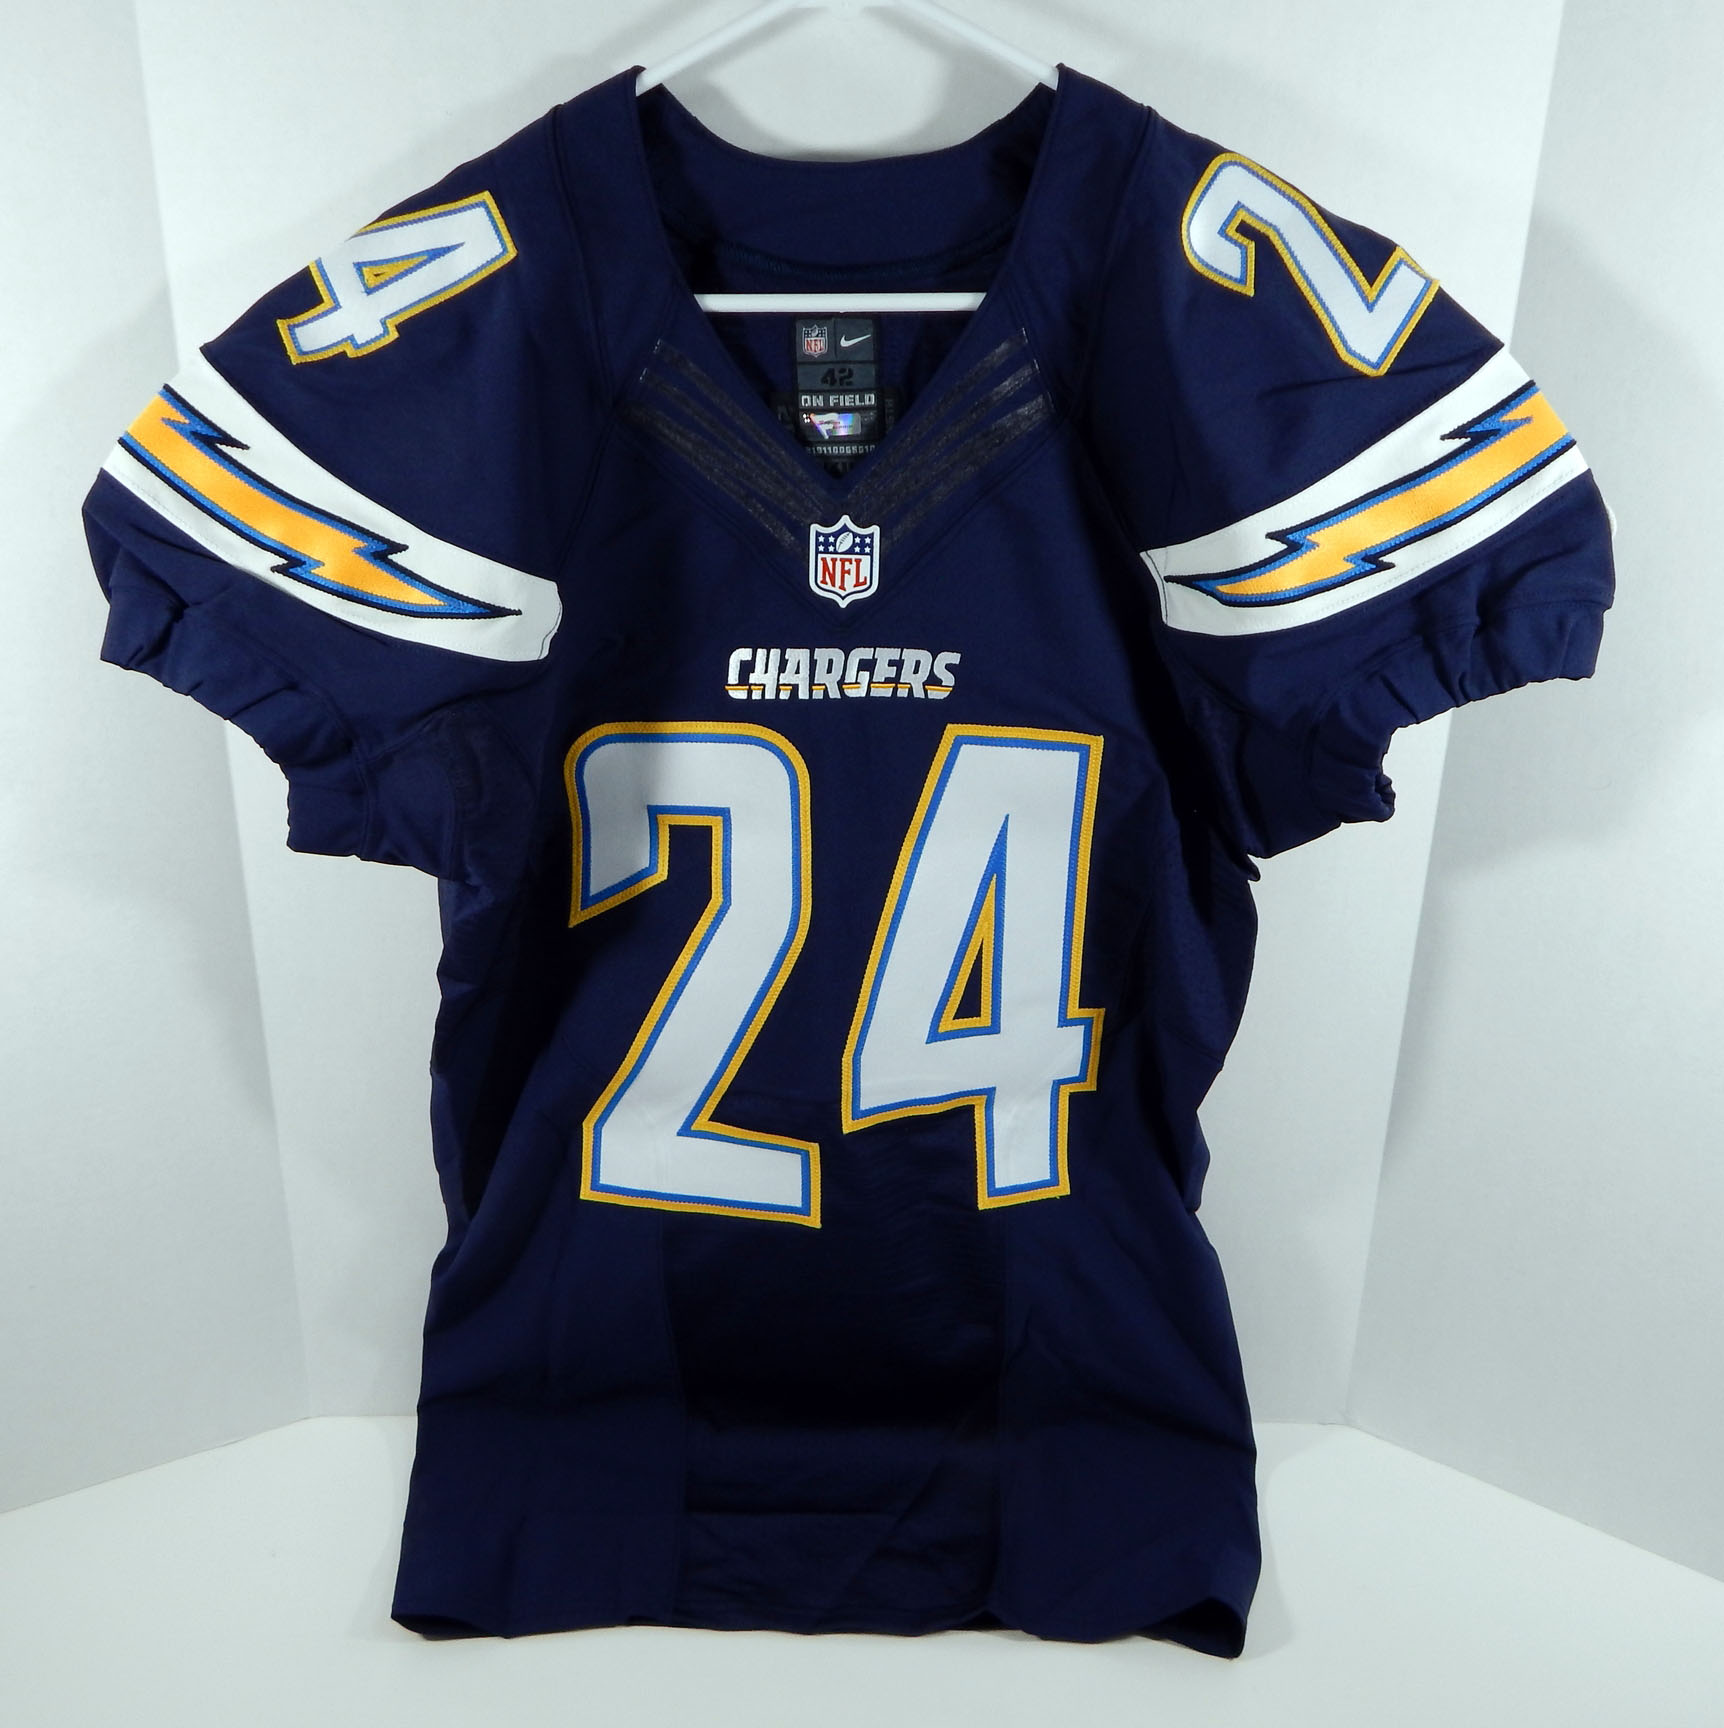 2015 chargers jersey